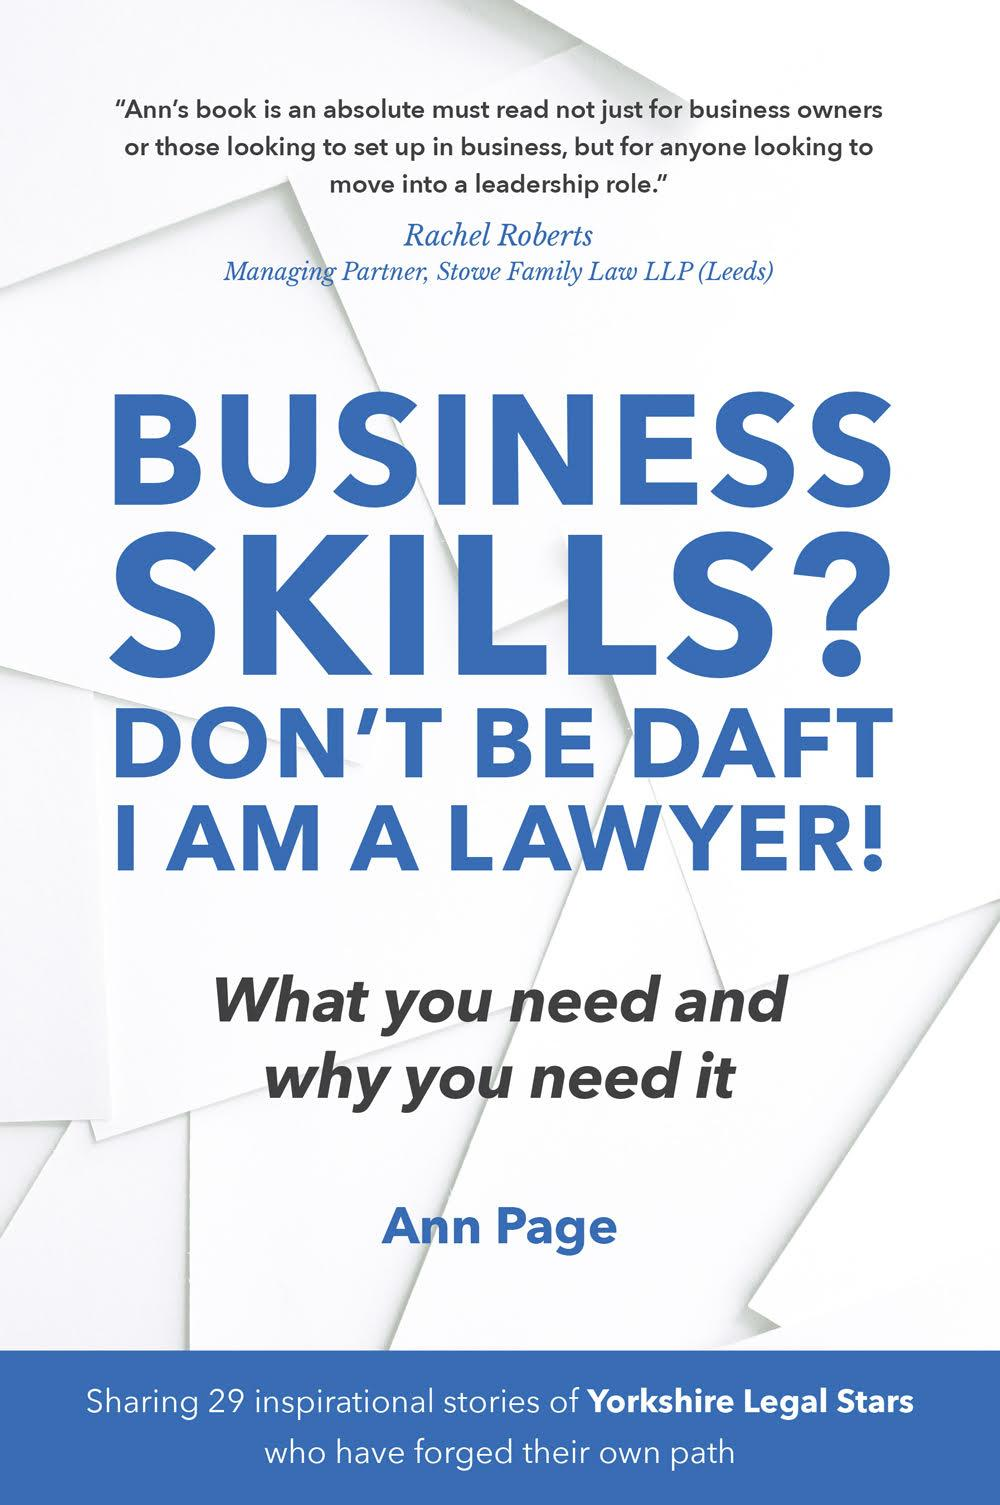 Business Skills? Don't be daft I am a lawyer - must read book for lawyers